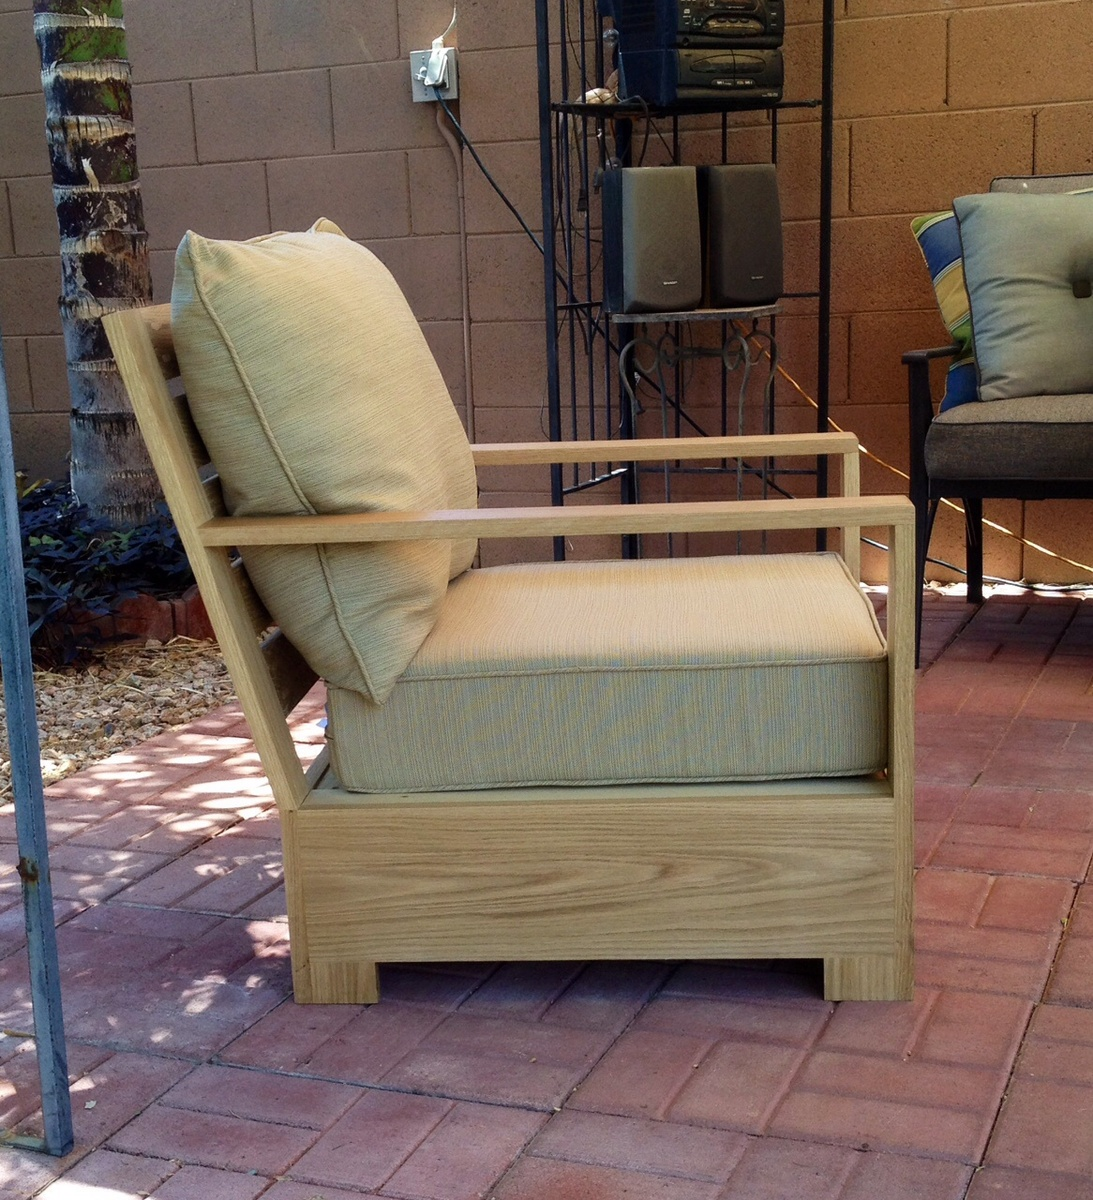 Ana White Bristol Outdoor Lounge Chair Diy Projects